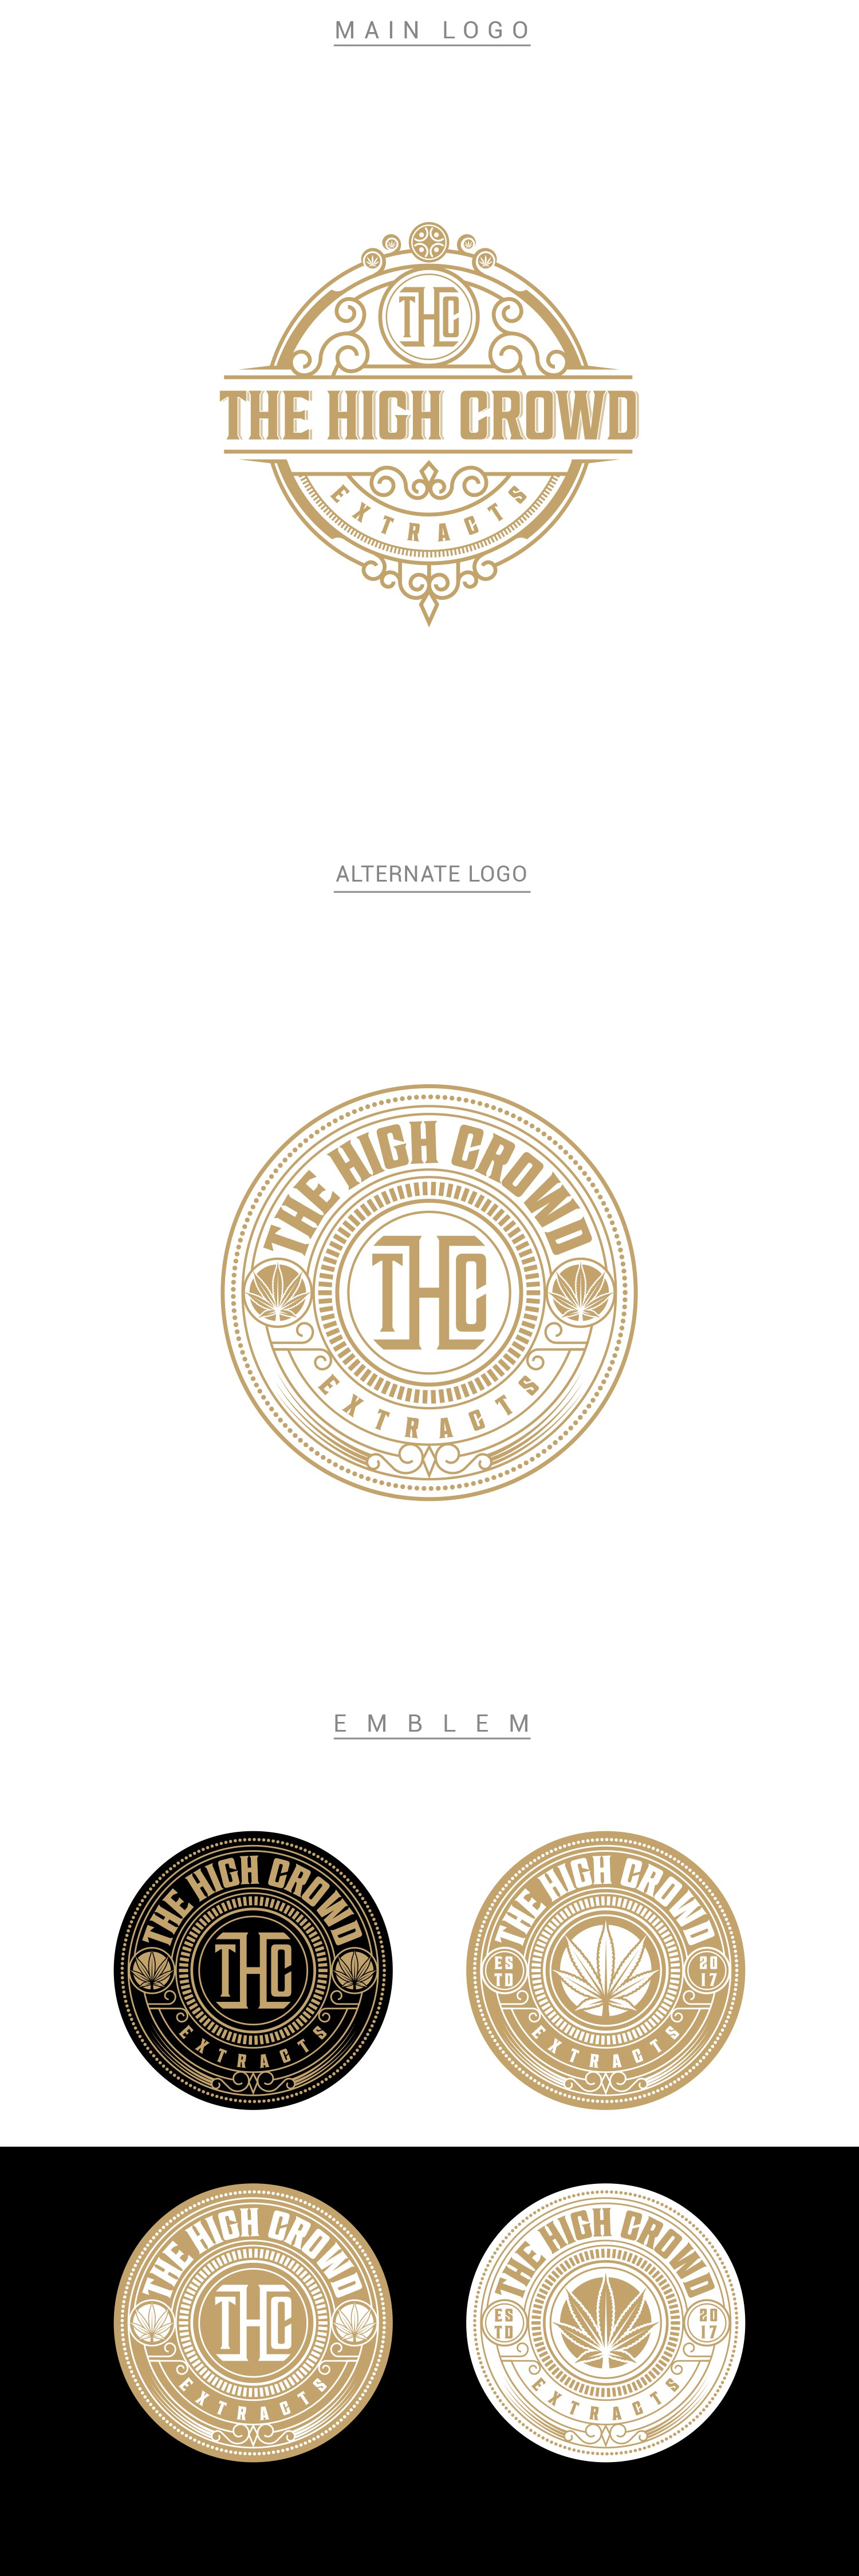 Design a Cannabis Oil Extract Logo for THE HIGH CROWD EXTRACTS; we want the best logo in the industry!